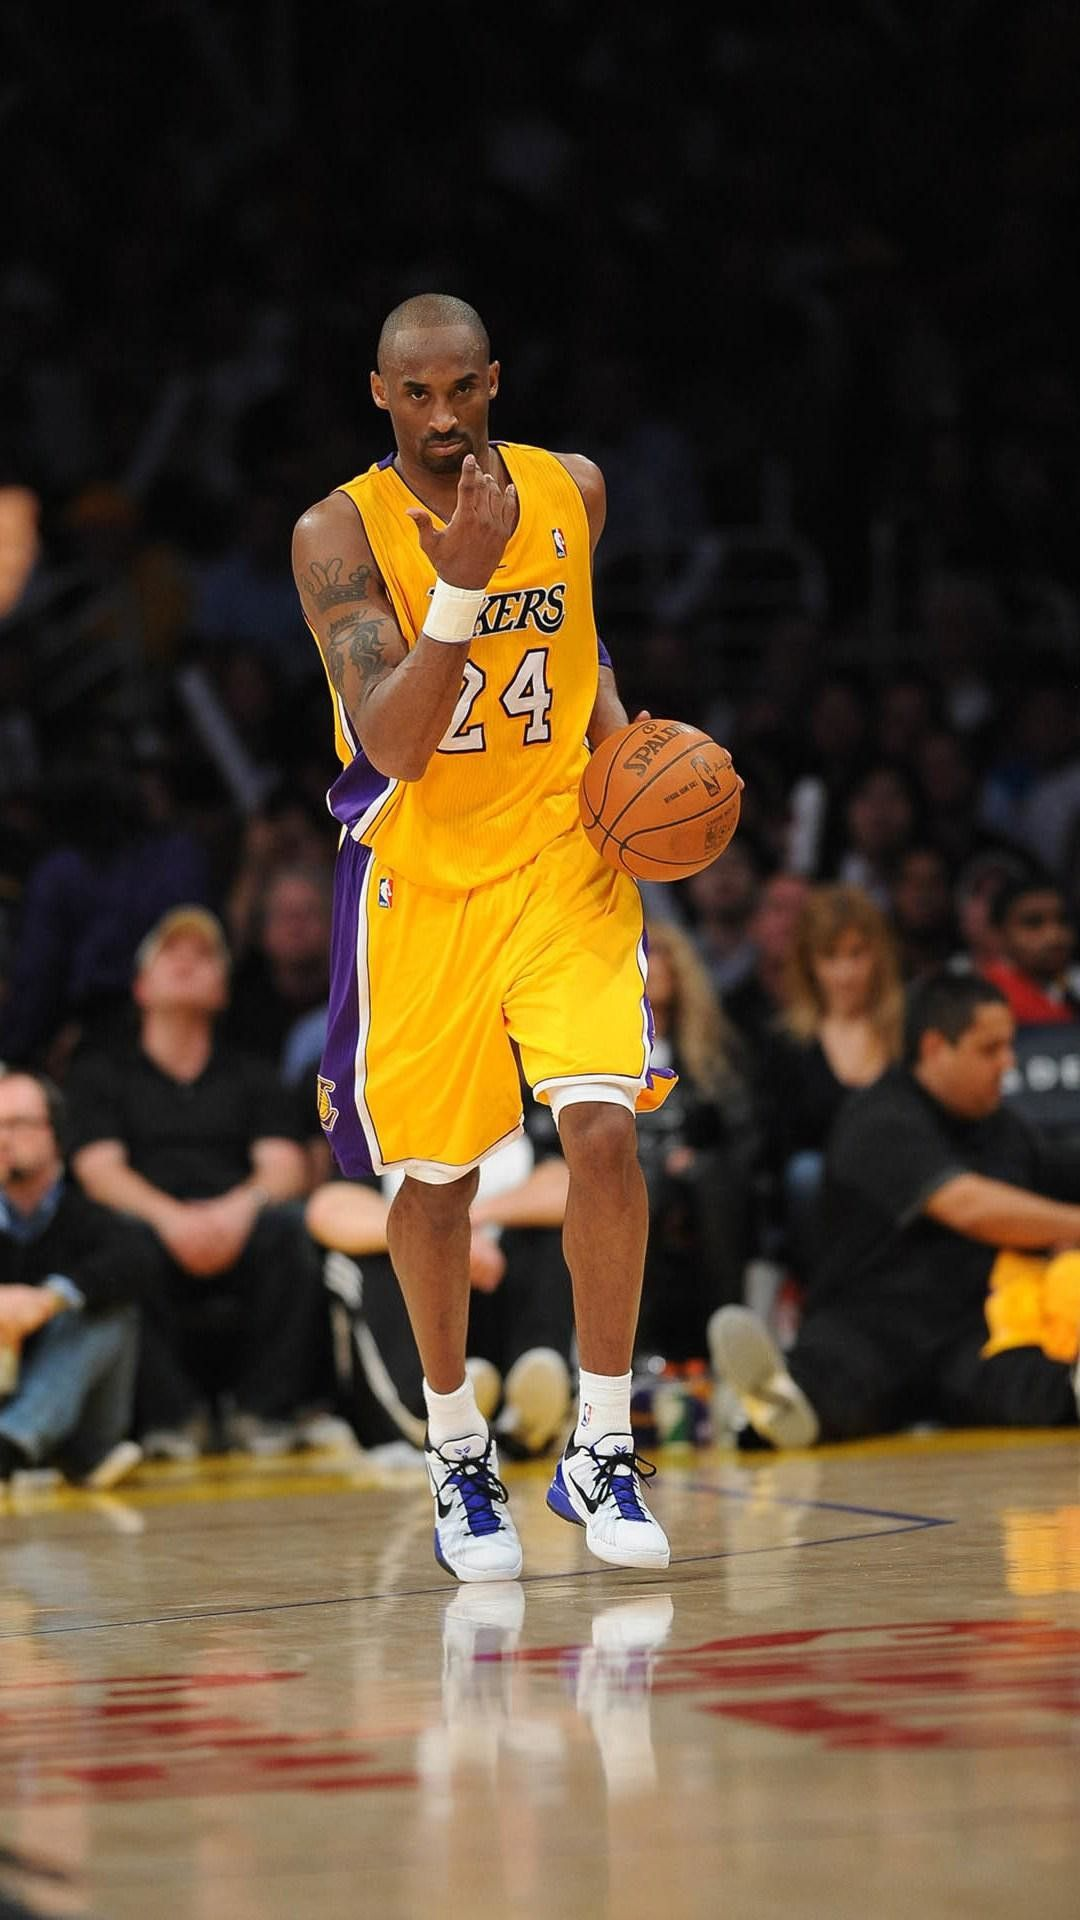 Kobe Bryant Iphone Wallpapers Top Free Kobe Bryant Iphone Backgrounds Wallpaperaccess